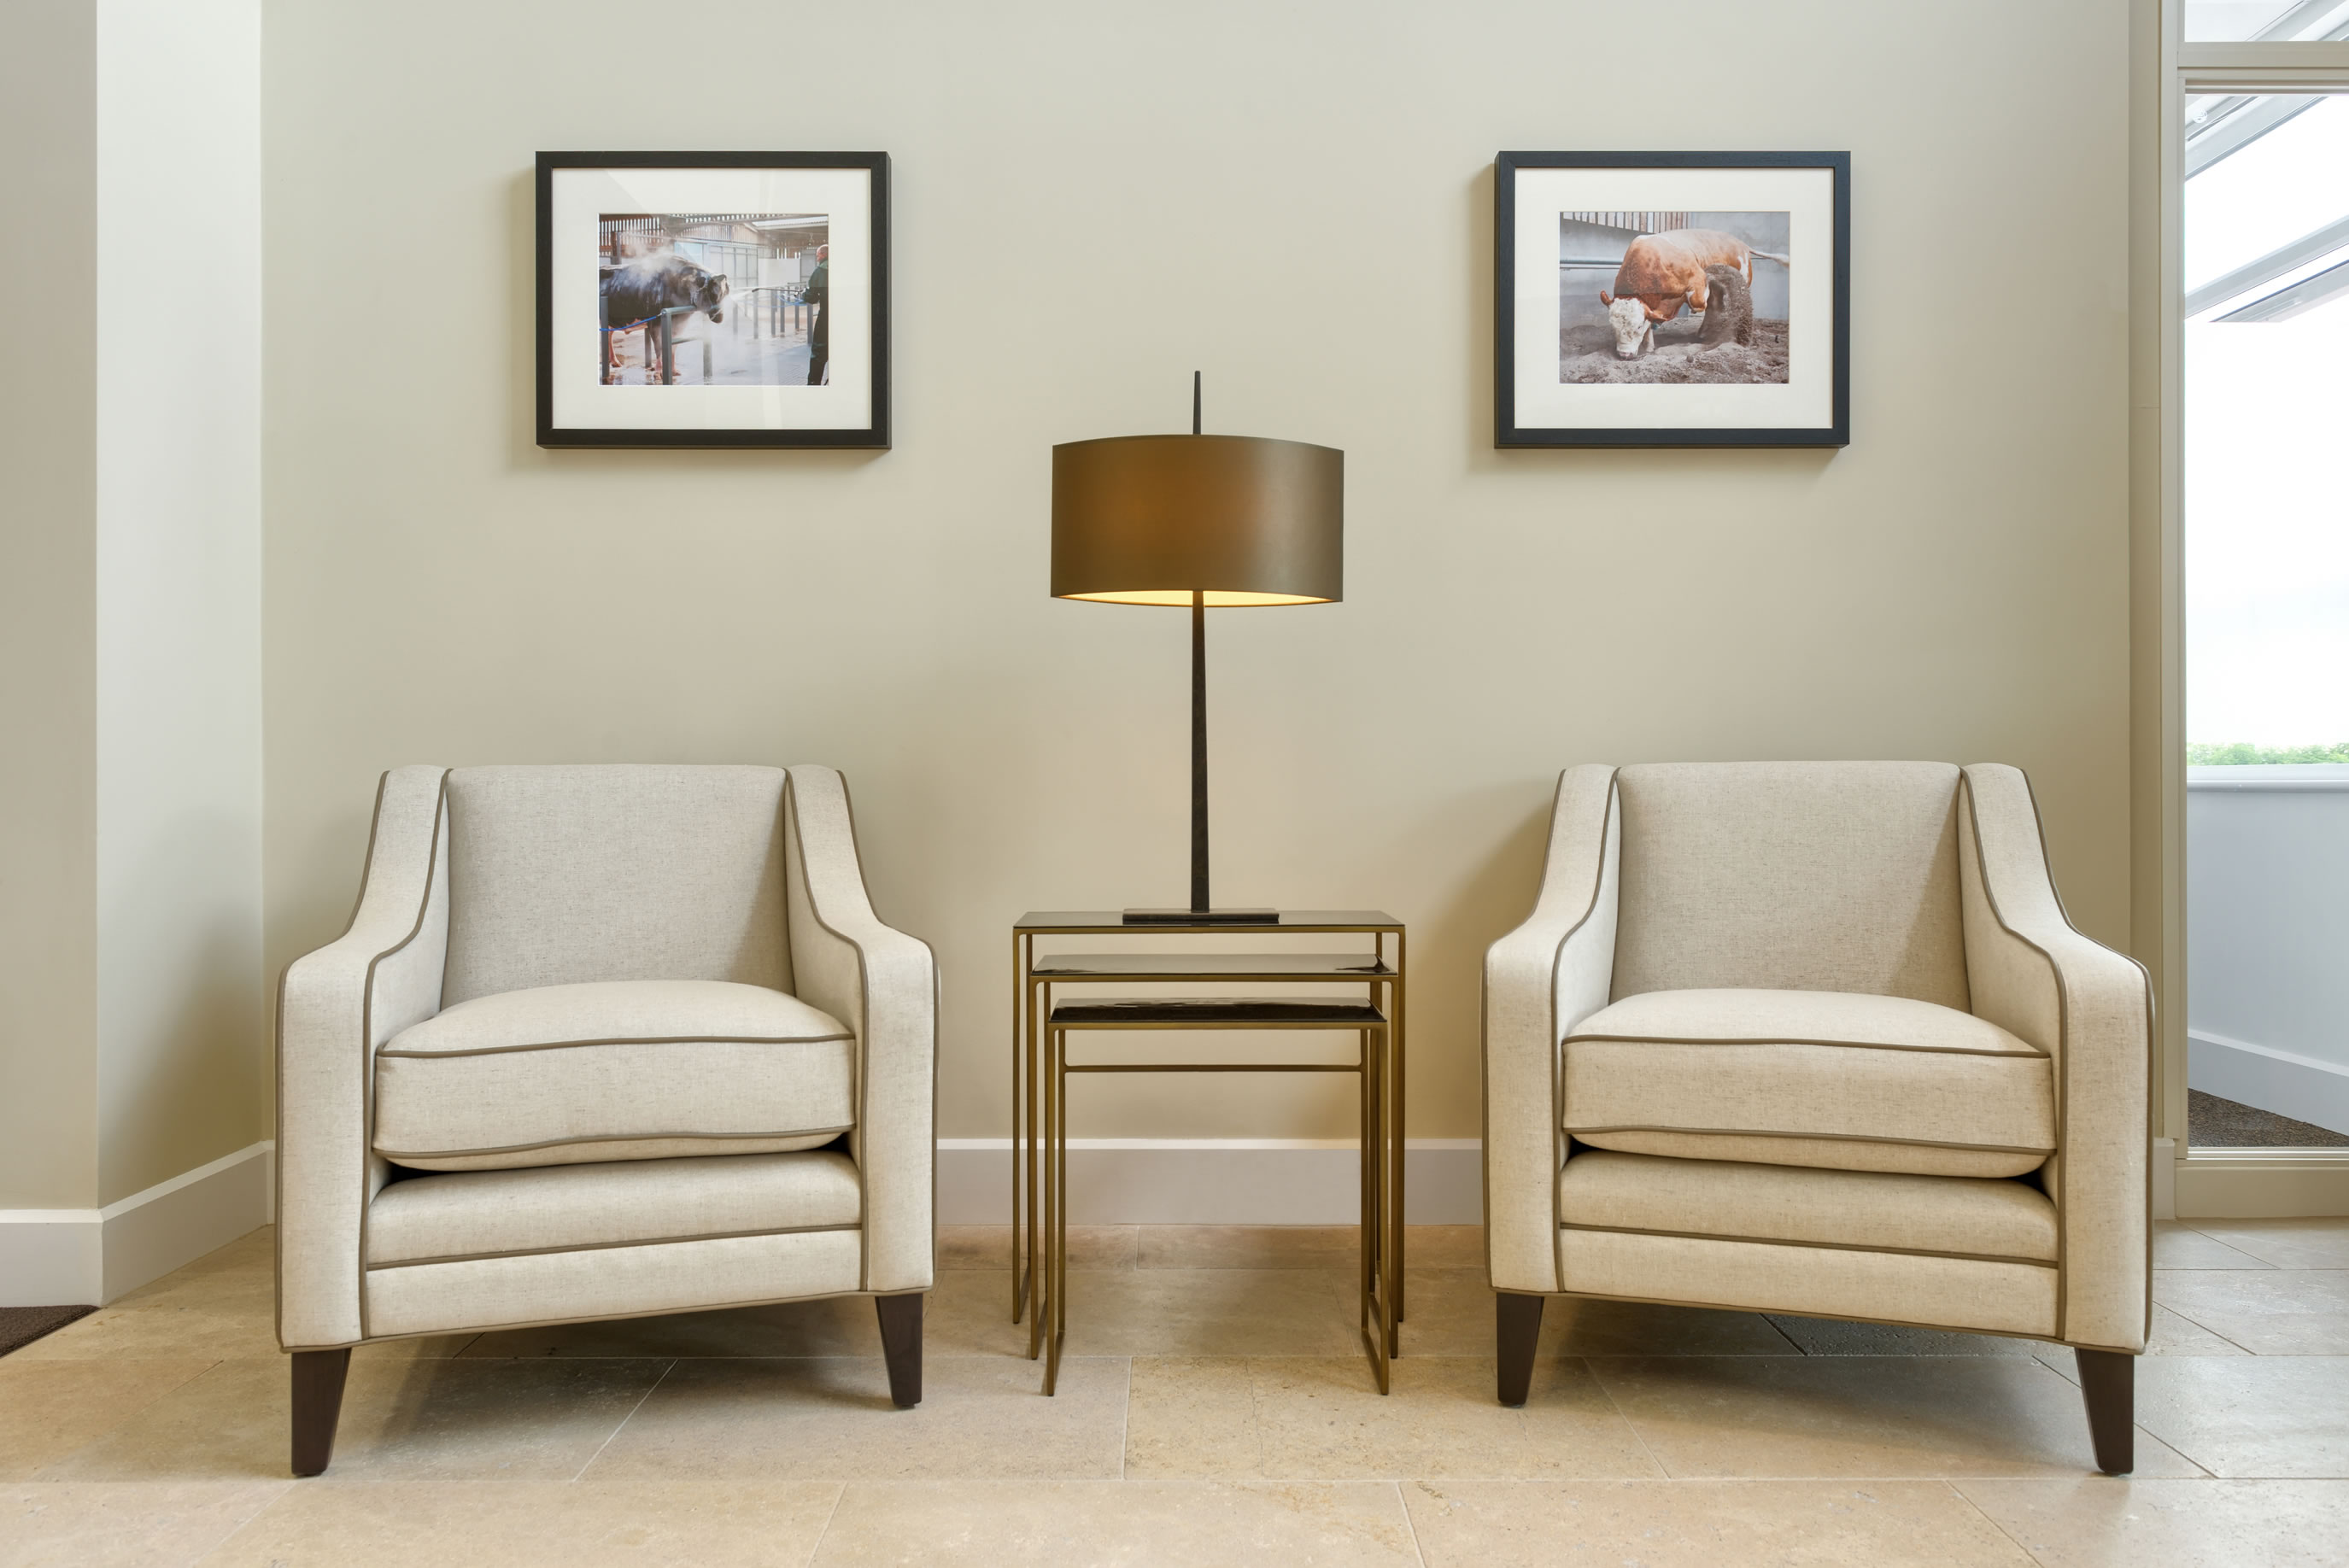 Cogent Breeding. A project by James Roberts Interior Design Practice